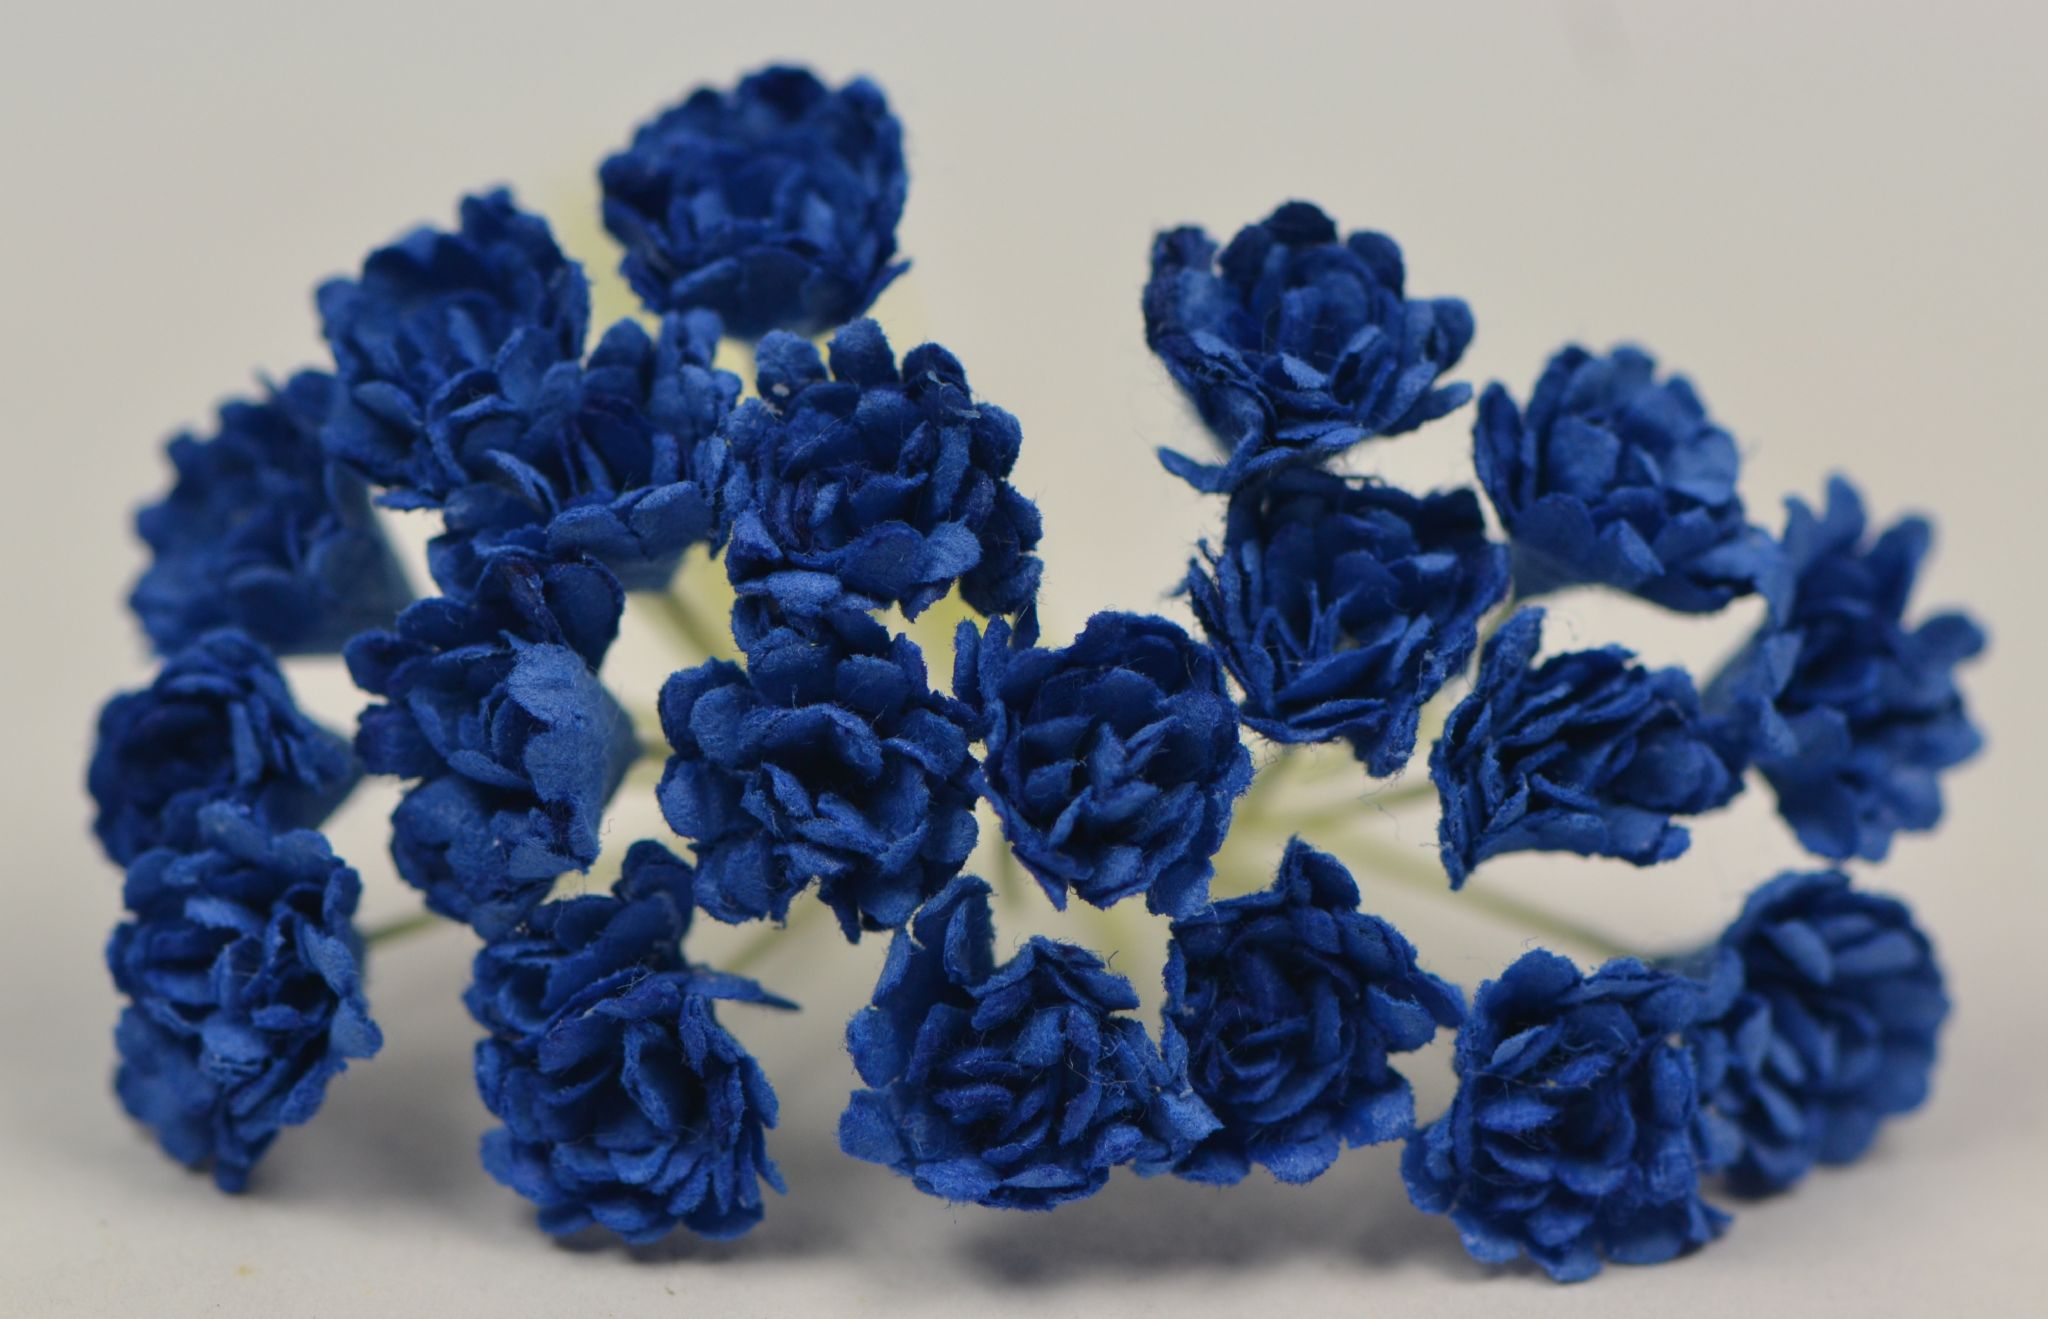 DARK ROYAL BLUE GYPSOPHILA FORGET ME NOT Mulberry Paper Flowers